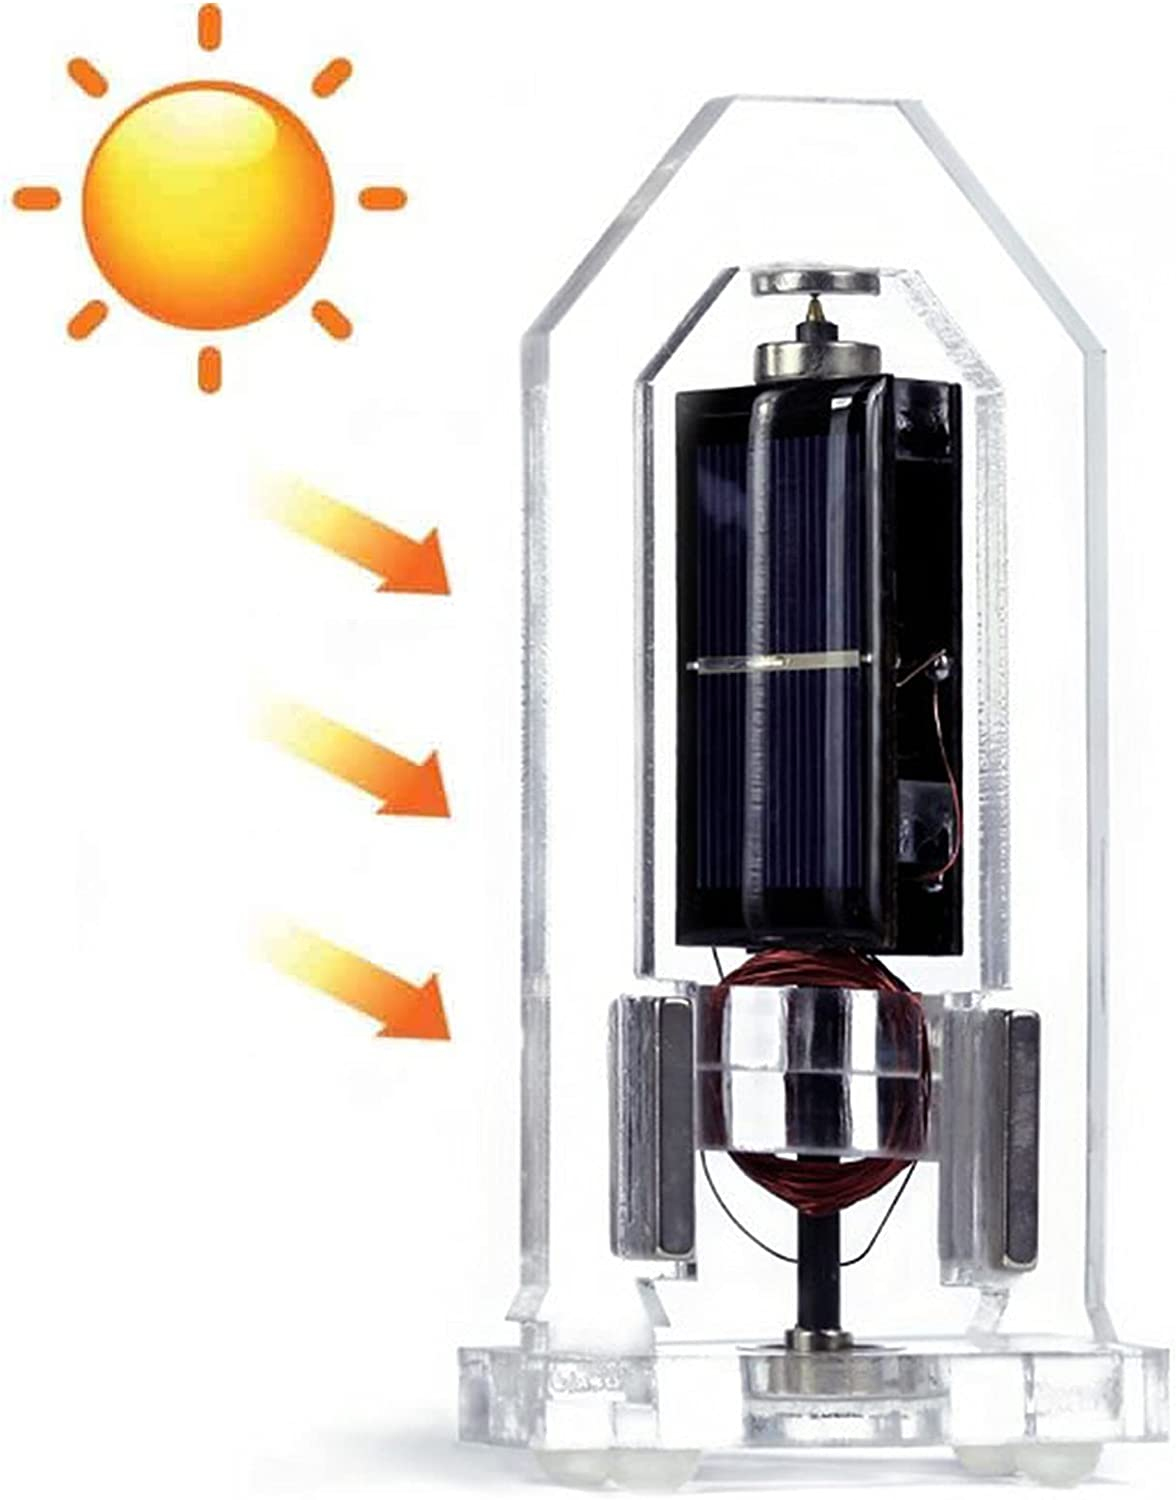 XYW Creativity Solar Magnetic Levitation Magneti Mendocino Motor Special price for a Our shop most popular limited time